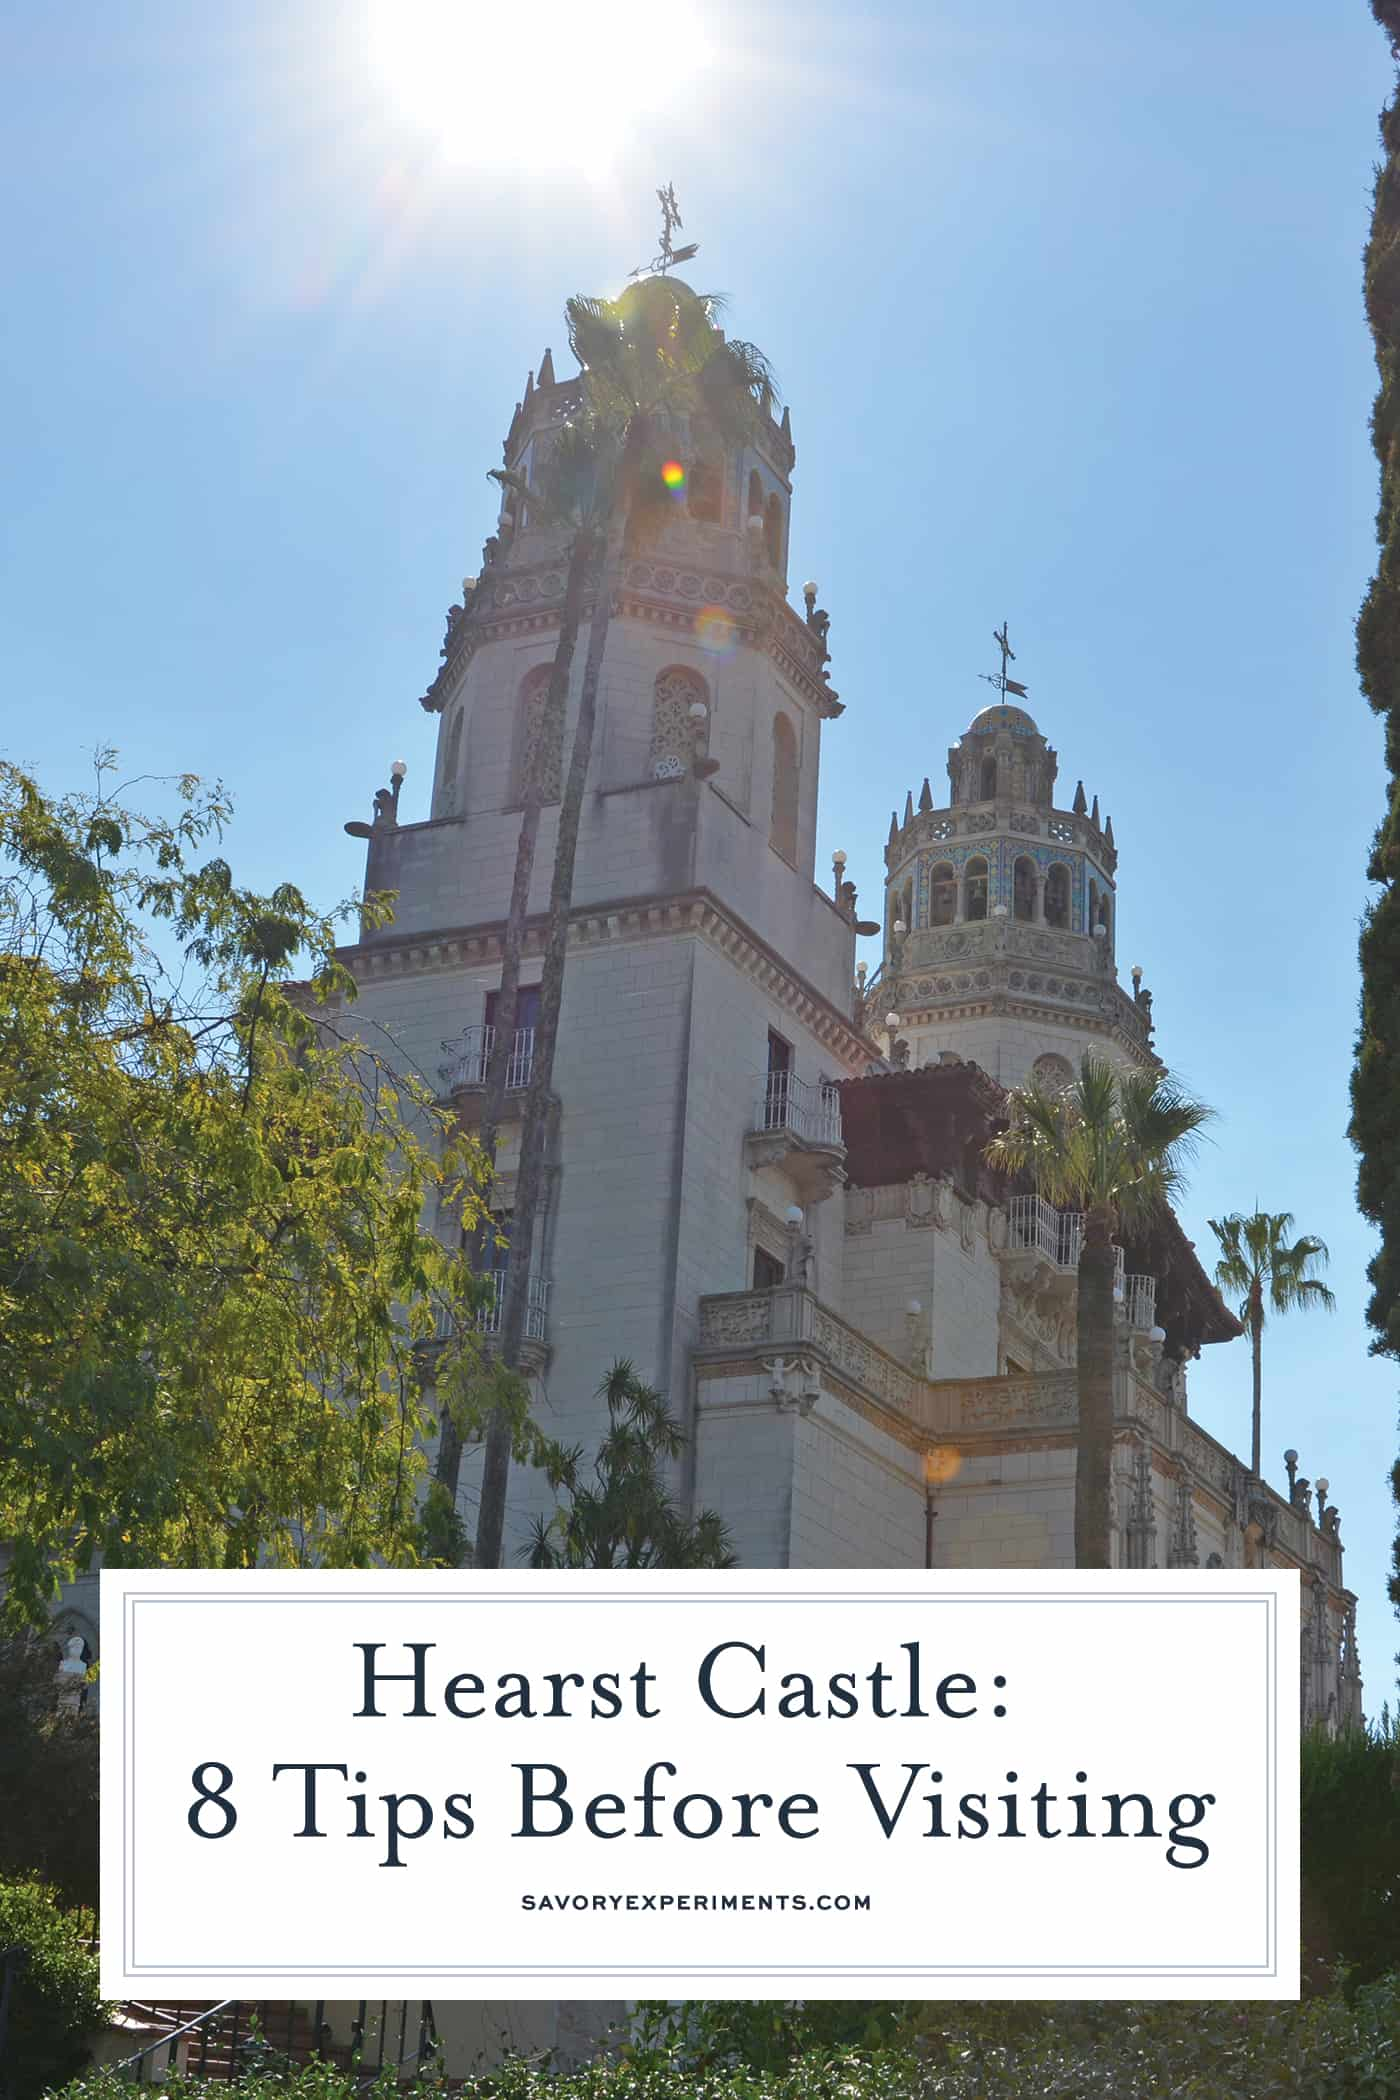 Hearst Castle is a